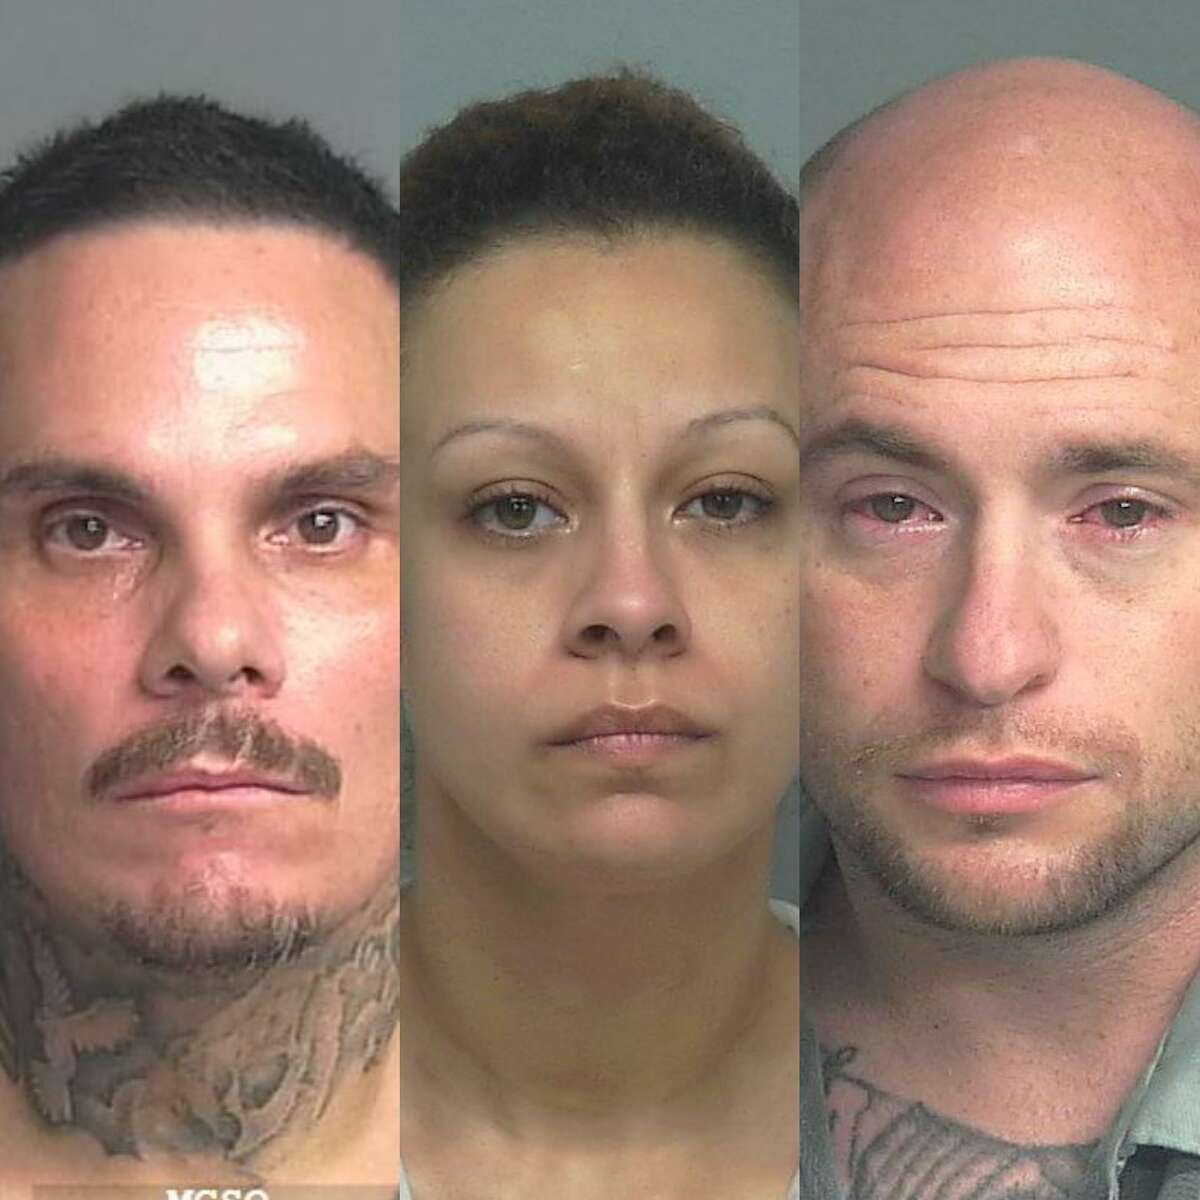 From left, Michael James Brooks, 43, of Cleveland, Lissette Elvira Guevara, 34, of Houston, and Christopher Jay Johnson, 32, of Conroe, are being charged with manufacture and delivery of a controlled substance.